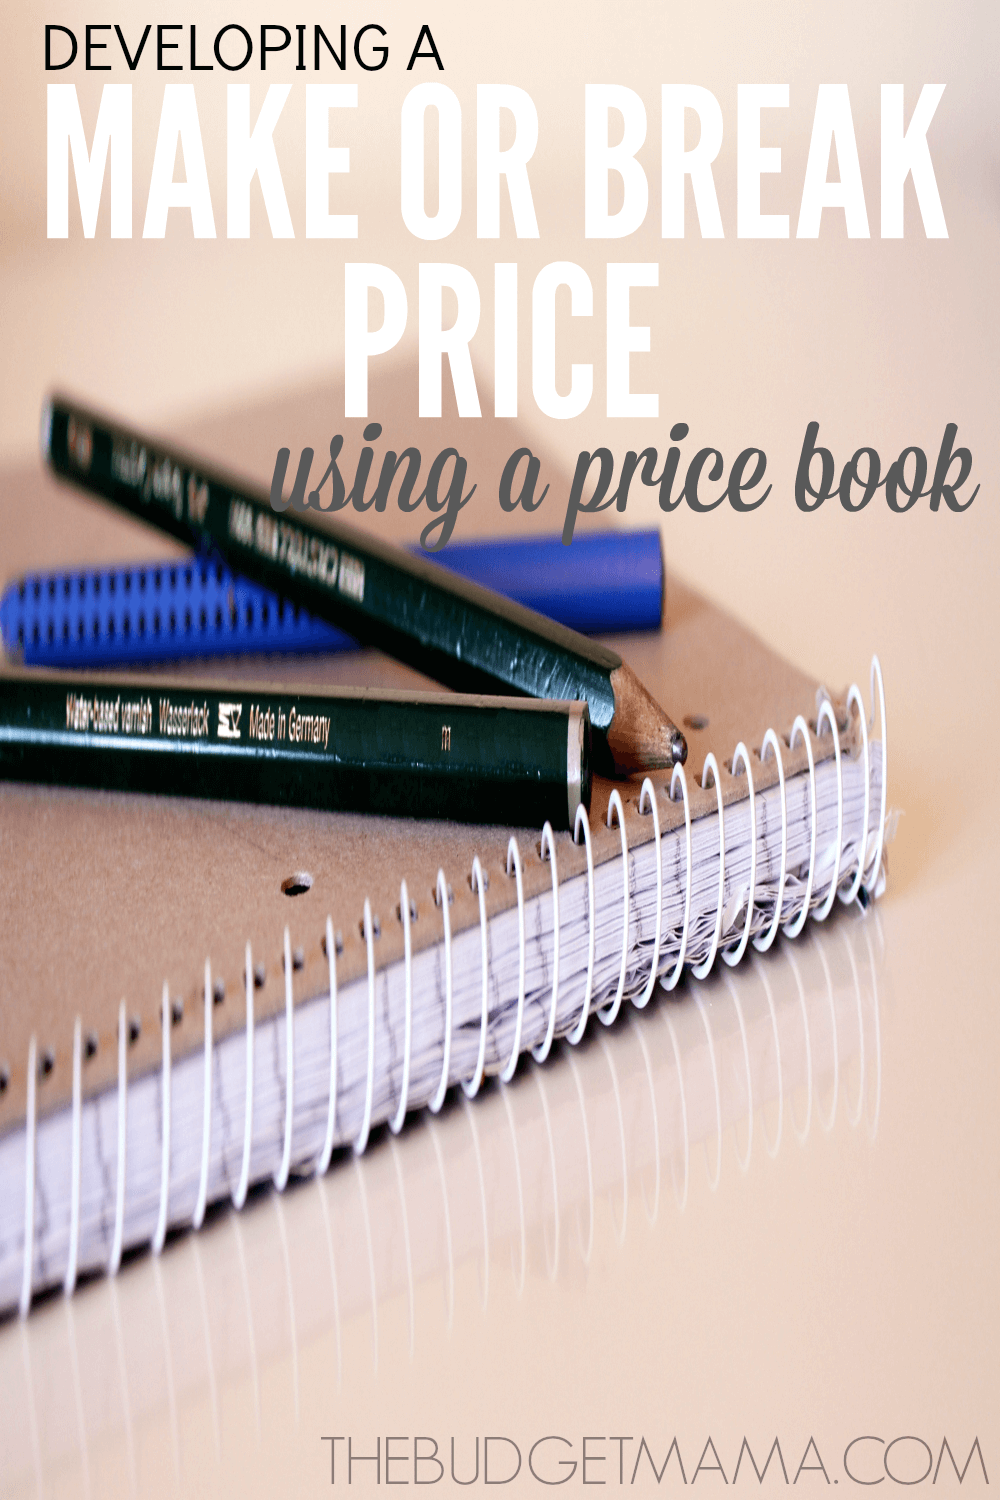 Develop a Make or Break Price Using a Price Book